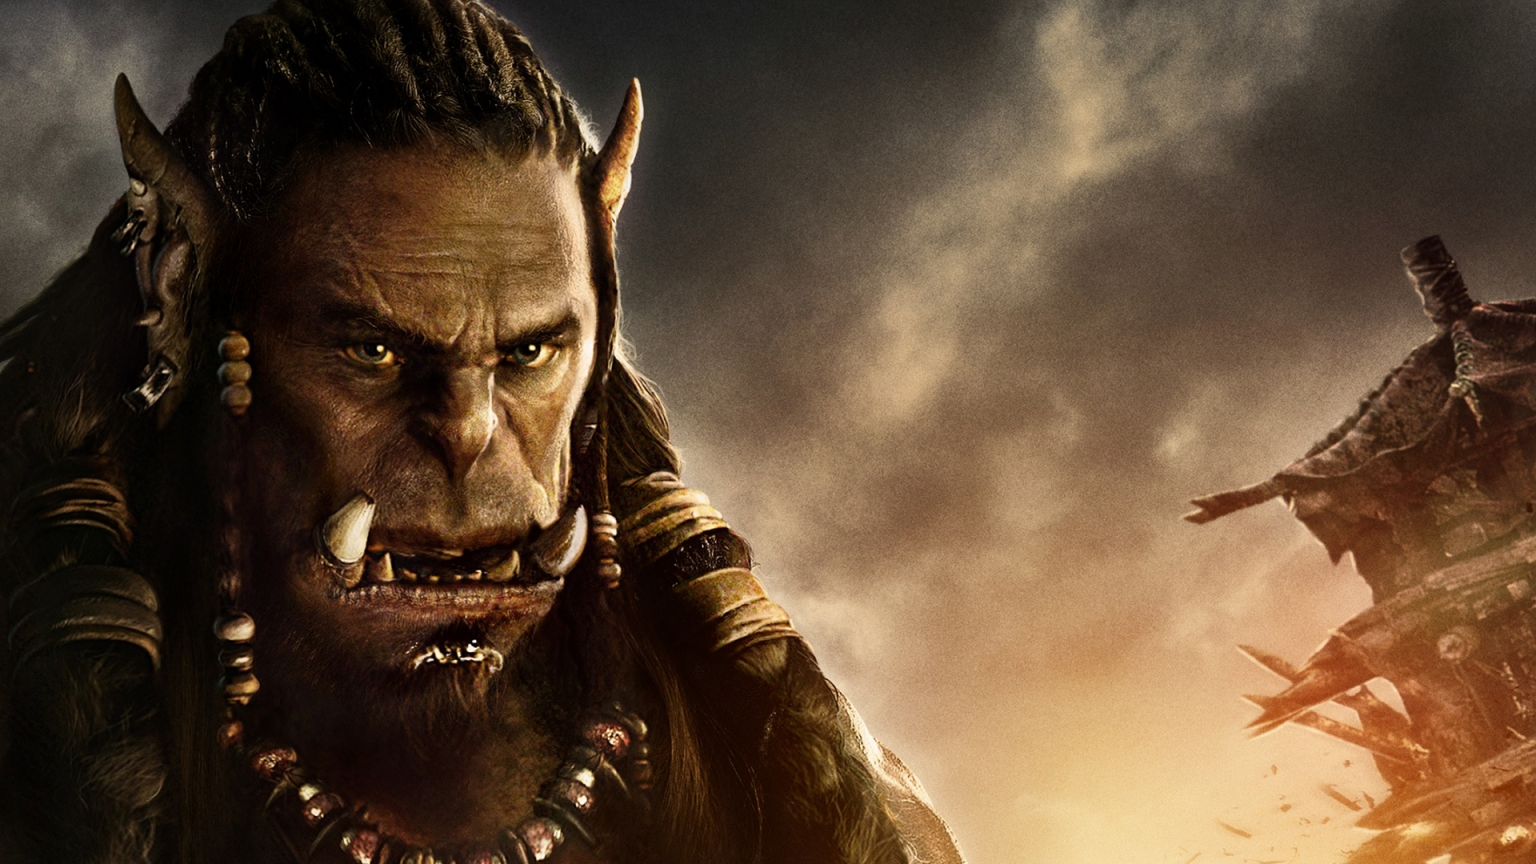 Warcraft Movie 2016 Durotan for 1536 x 864 HDTV resolution